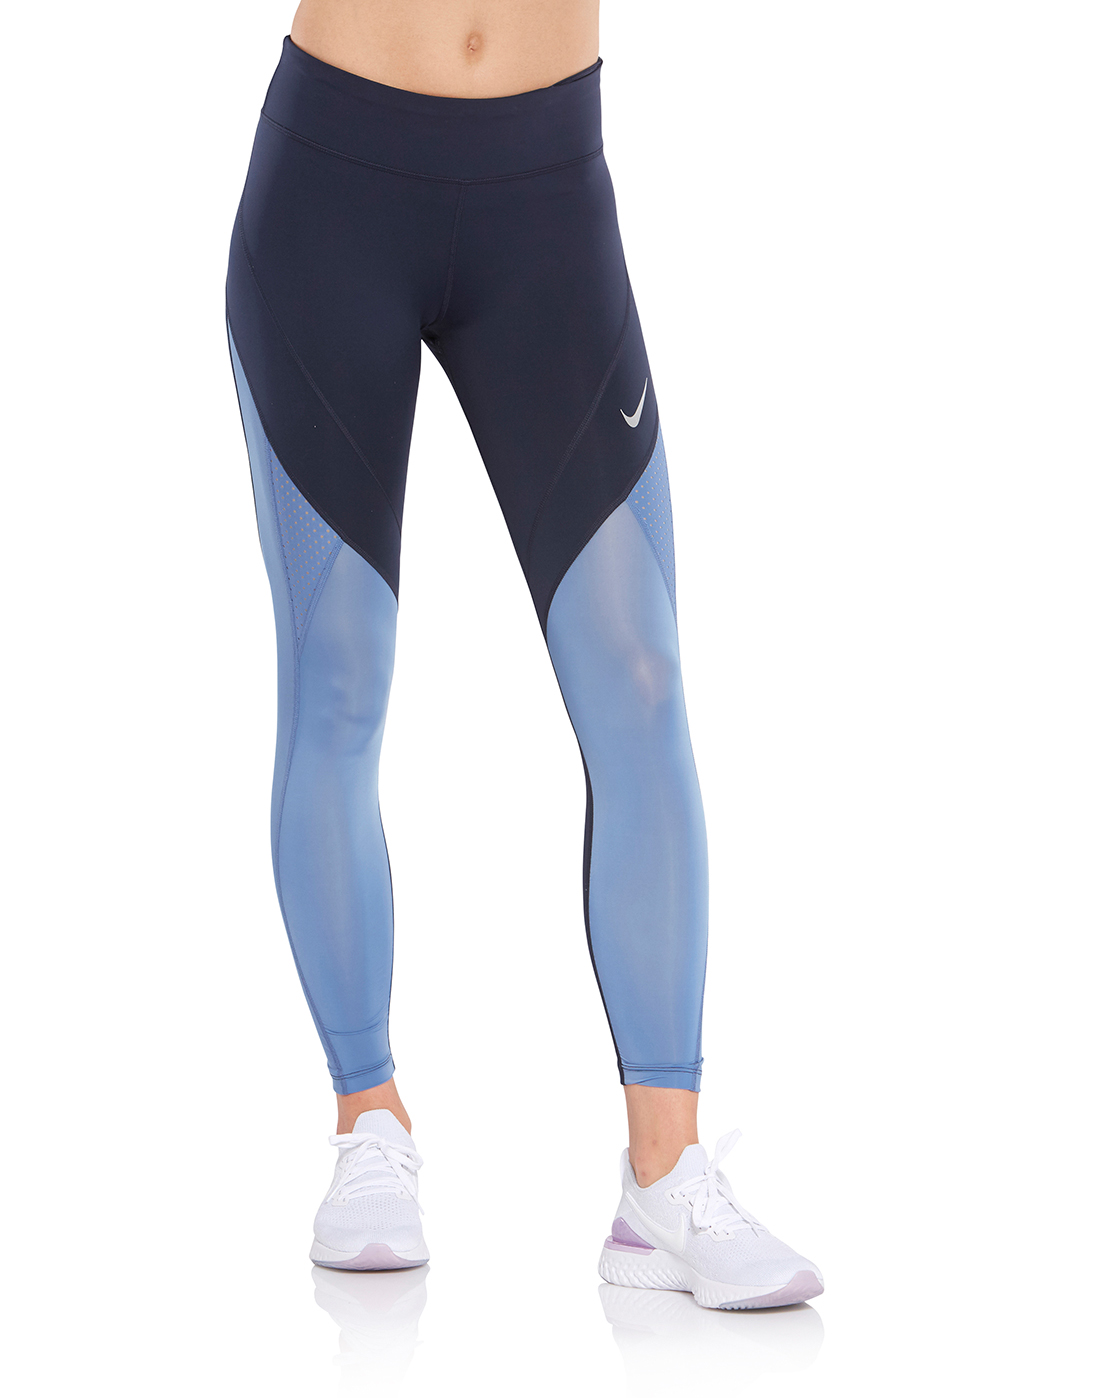 35ec8ee045c5f7 Women's Blue Nike Epic Lux Tights | Life Style Sports